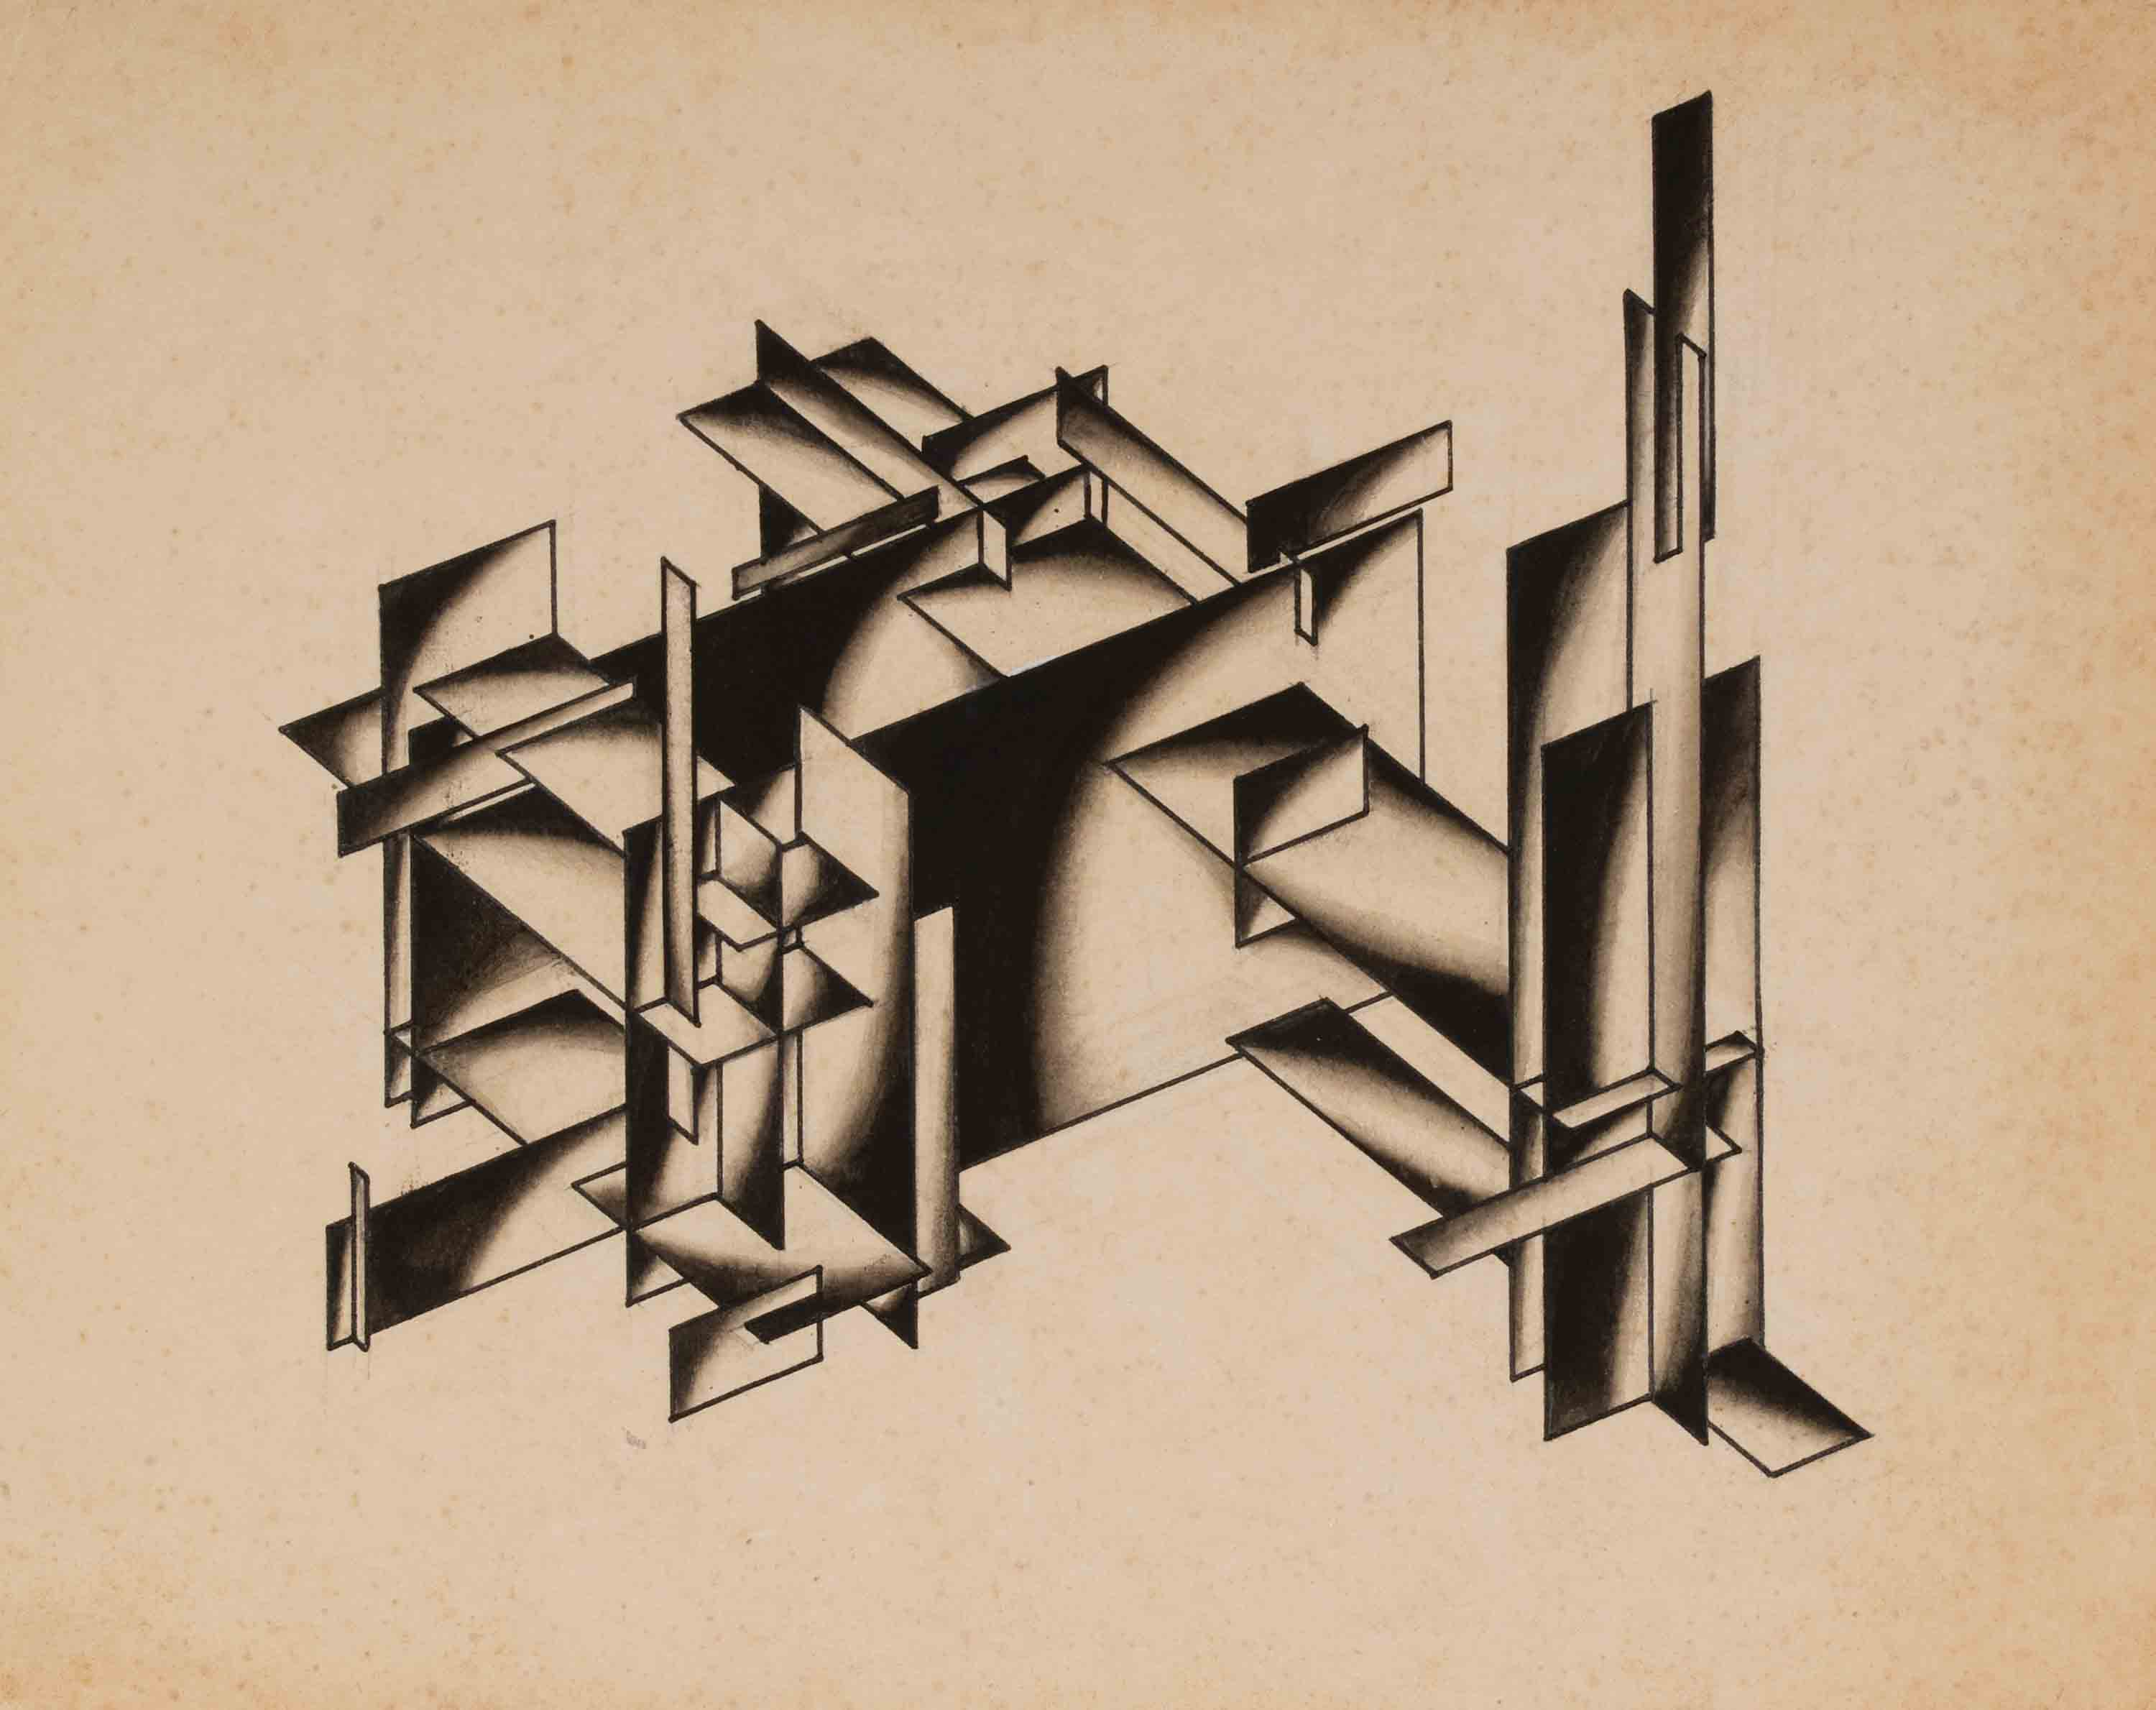 Untitled from the series Fundamentals of Modern Architecture, 1920s - Yakov Chernikhov